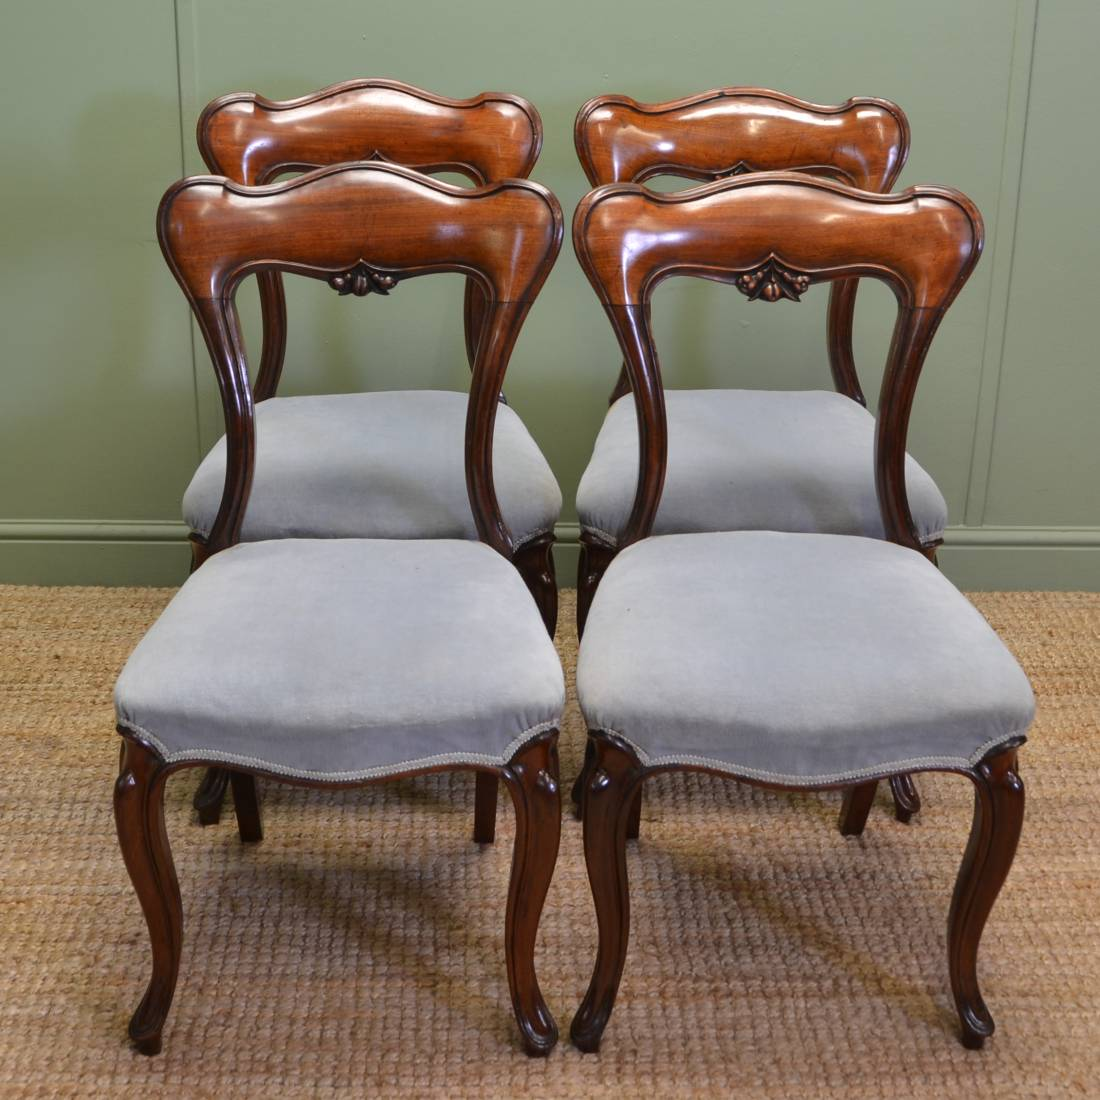 Elegant Chairs Set Of Four Super Quality Elegant Victorian Mahogany